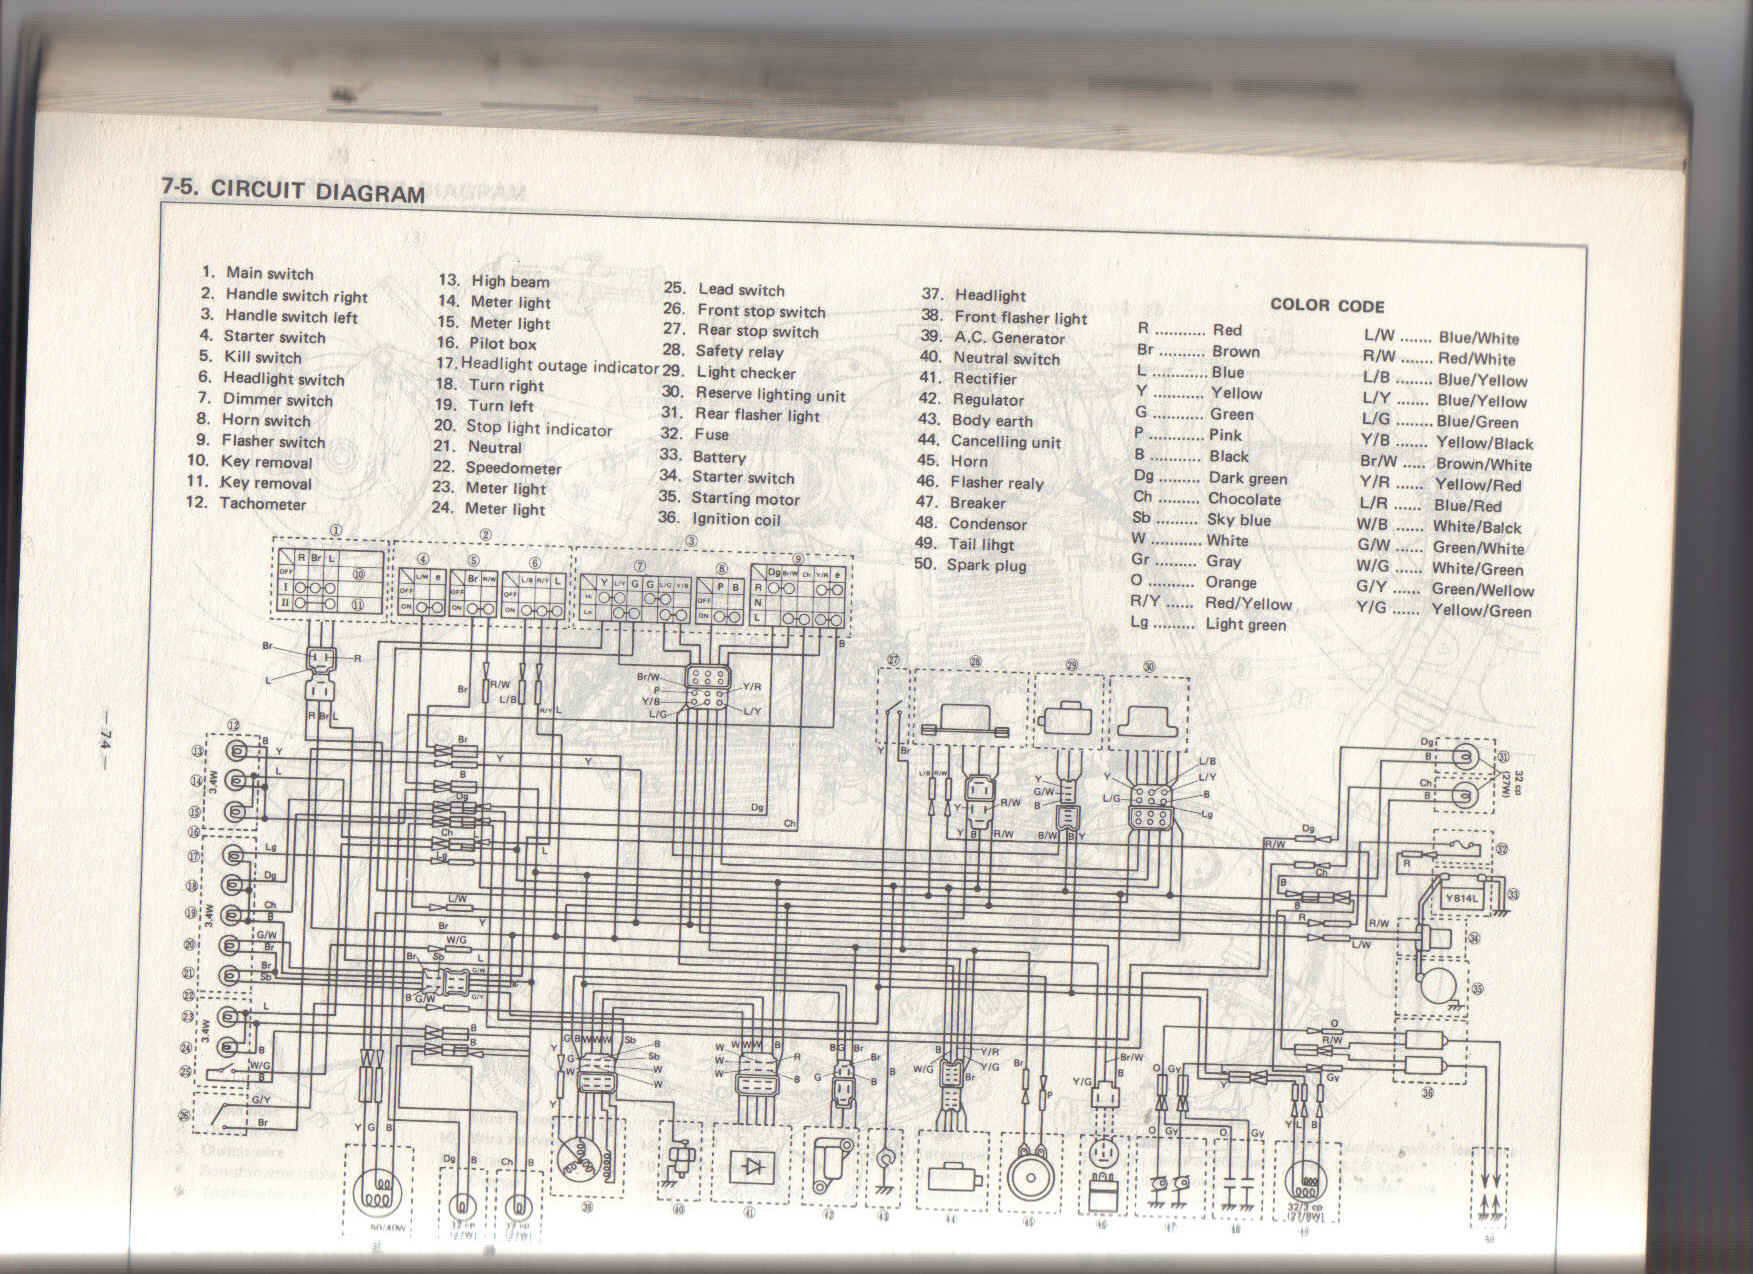 Manic Xs650 Conversion Burned Out Royal Enfield Wiring Diagram For Horn Xs650wiring 25283 Kb 1753x1274 Viewed 617 Times Logged 2001